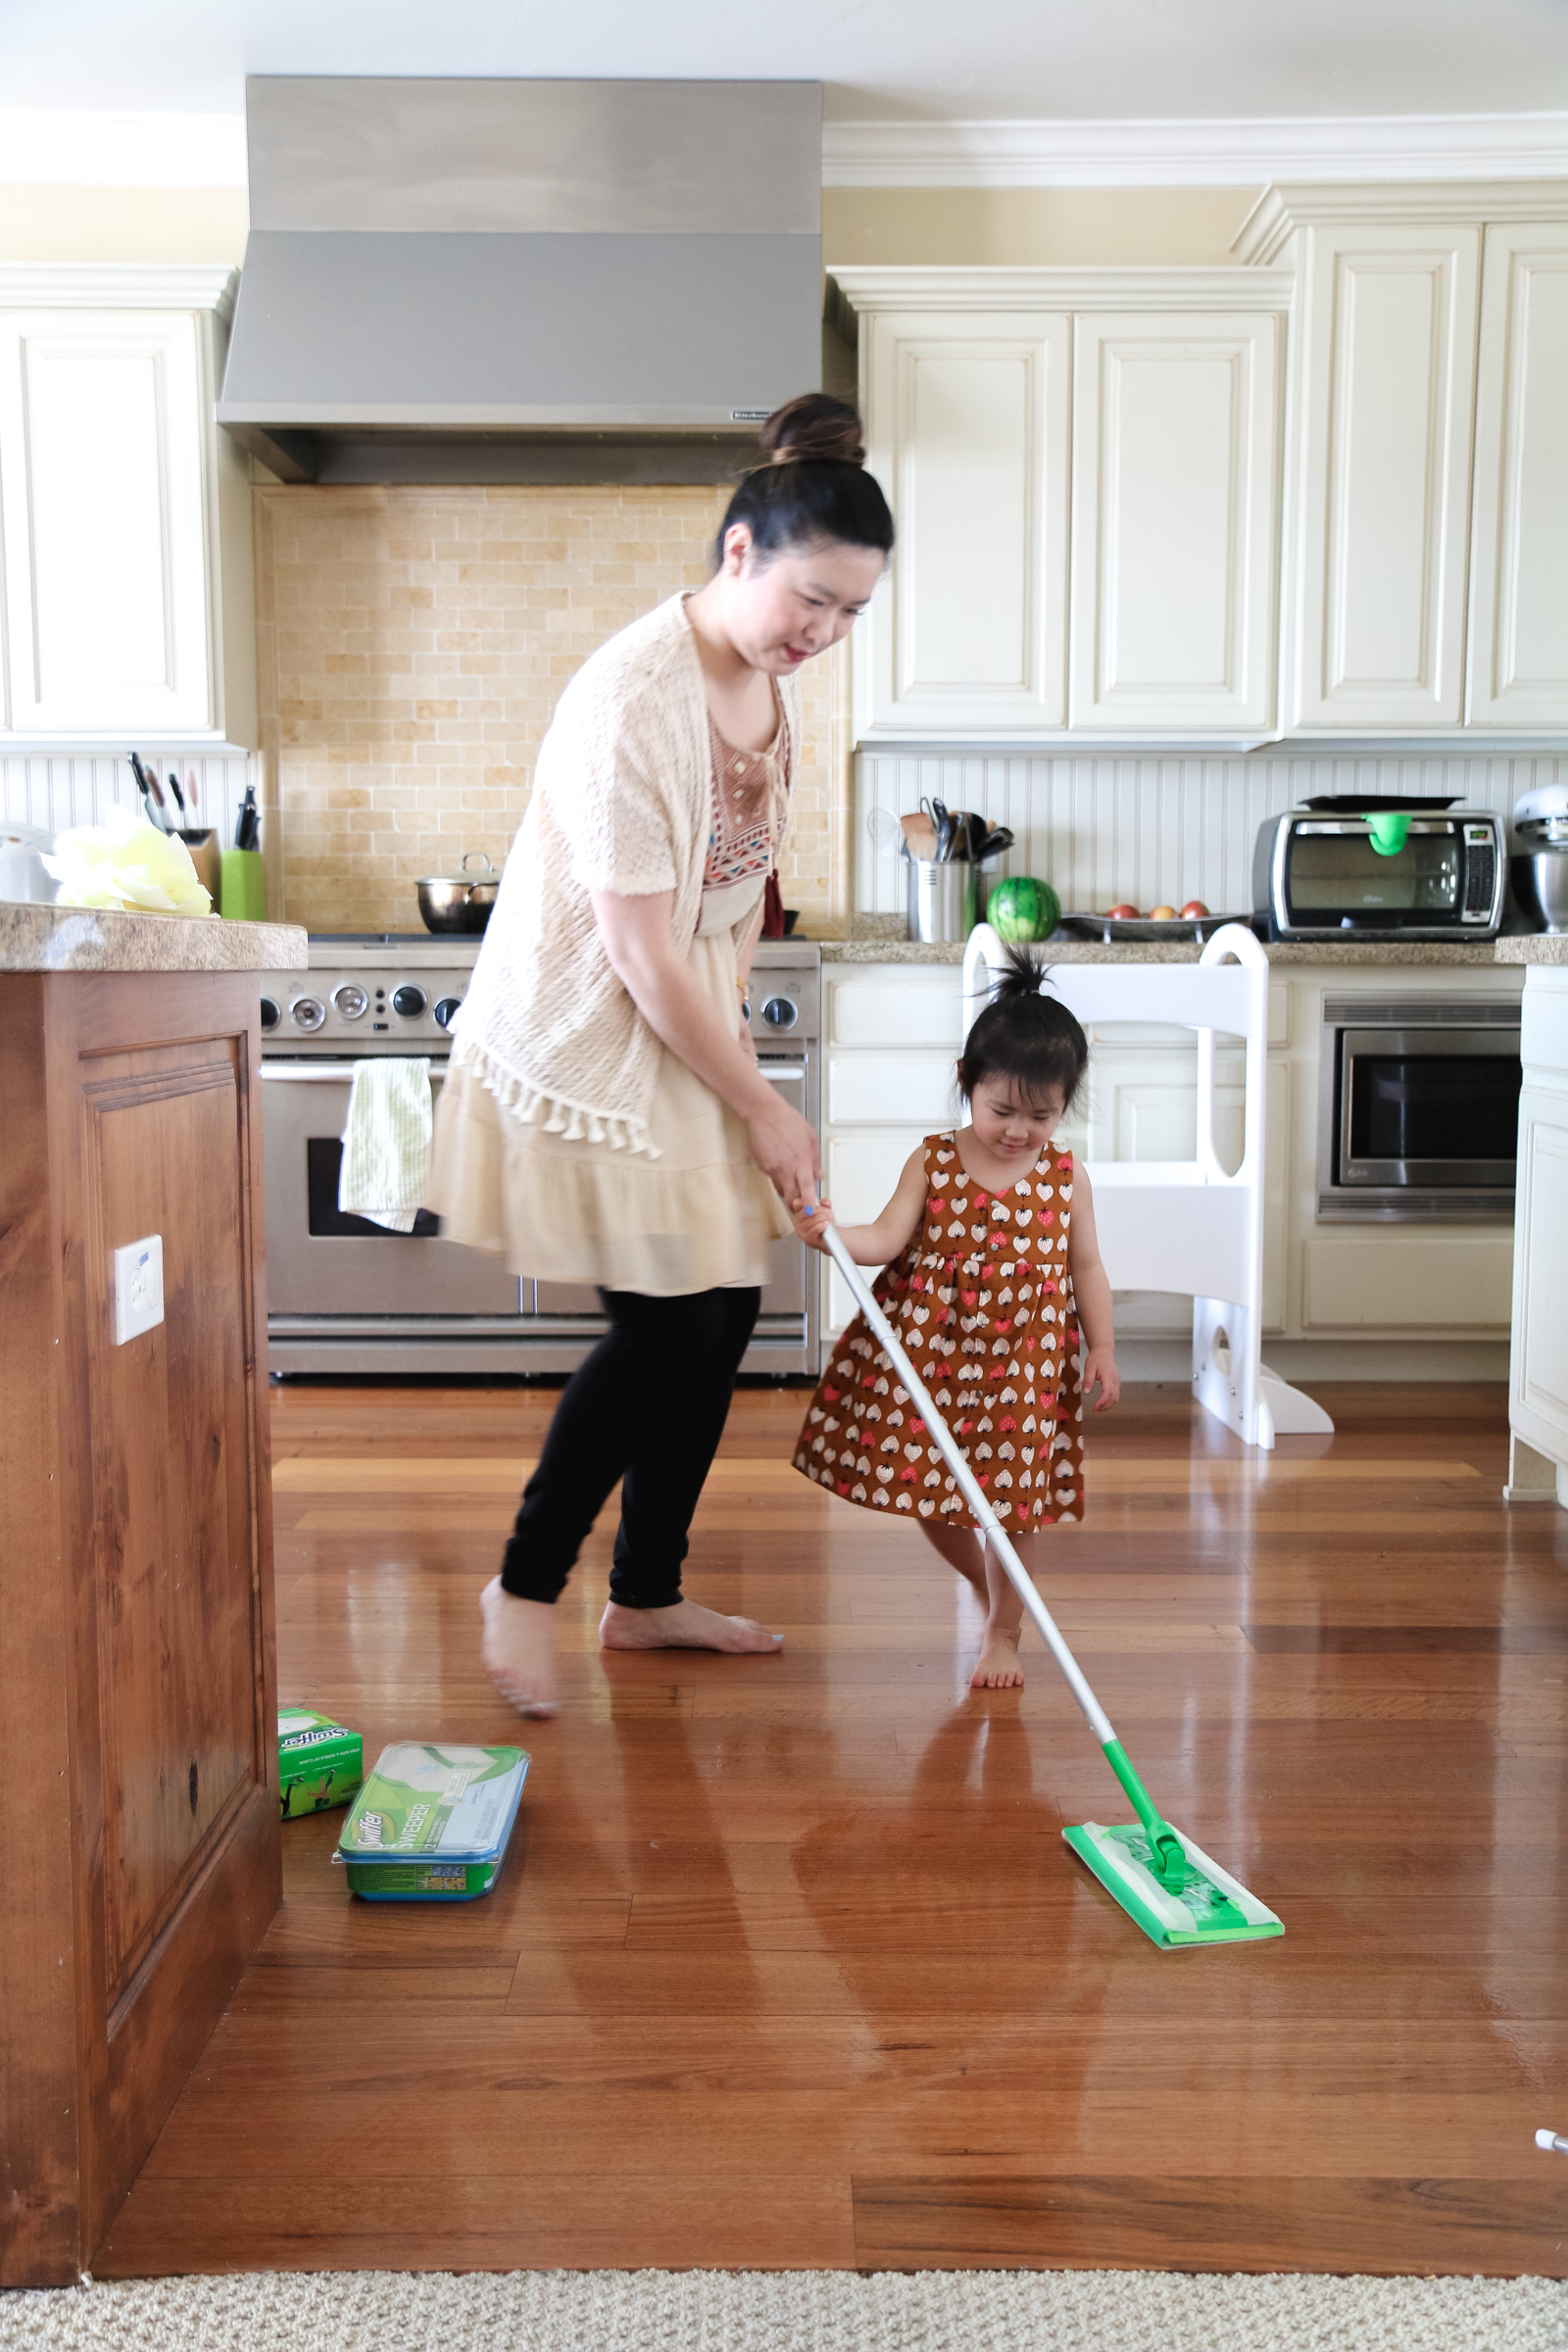 5 Tips On How To Save Time Cleaning by lifestyle blogger Sandy A La Mode